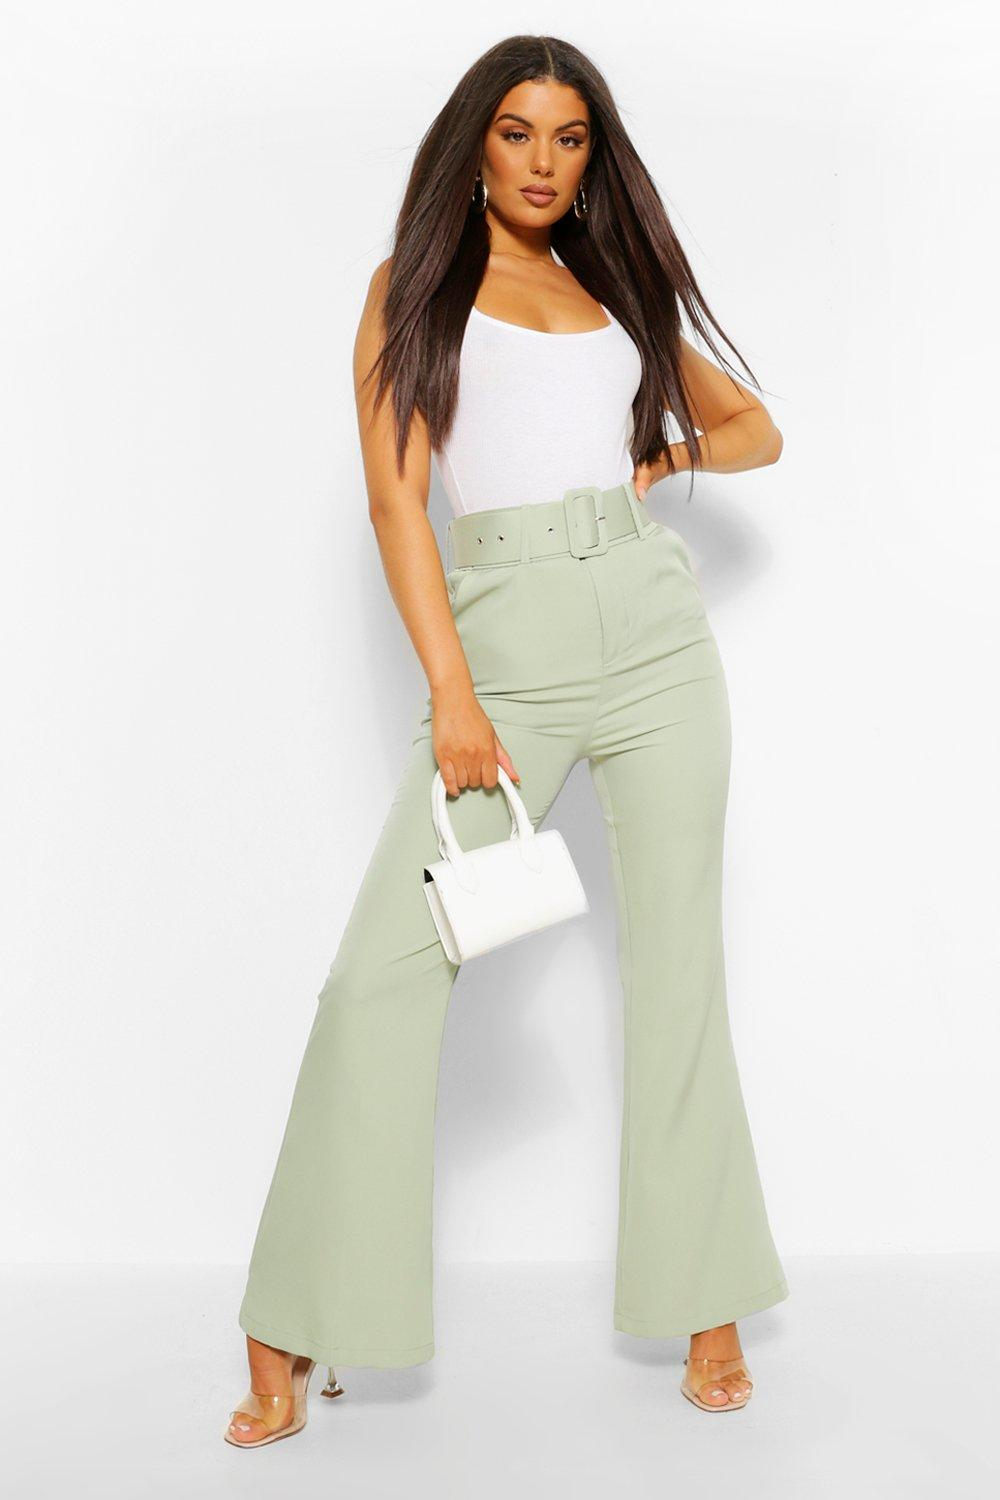 60s – 70s Pants, Jeans, Hippie, Bell Bottoms, Jumpsuits Womens Self Fabric Belted Kick Flare Tailored Trouser - Green - M $21.00 AT vintagedancer.com